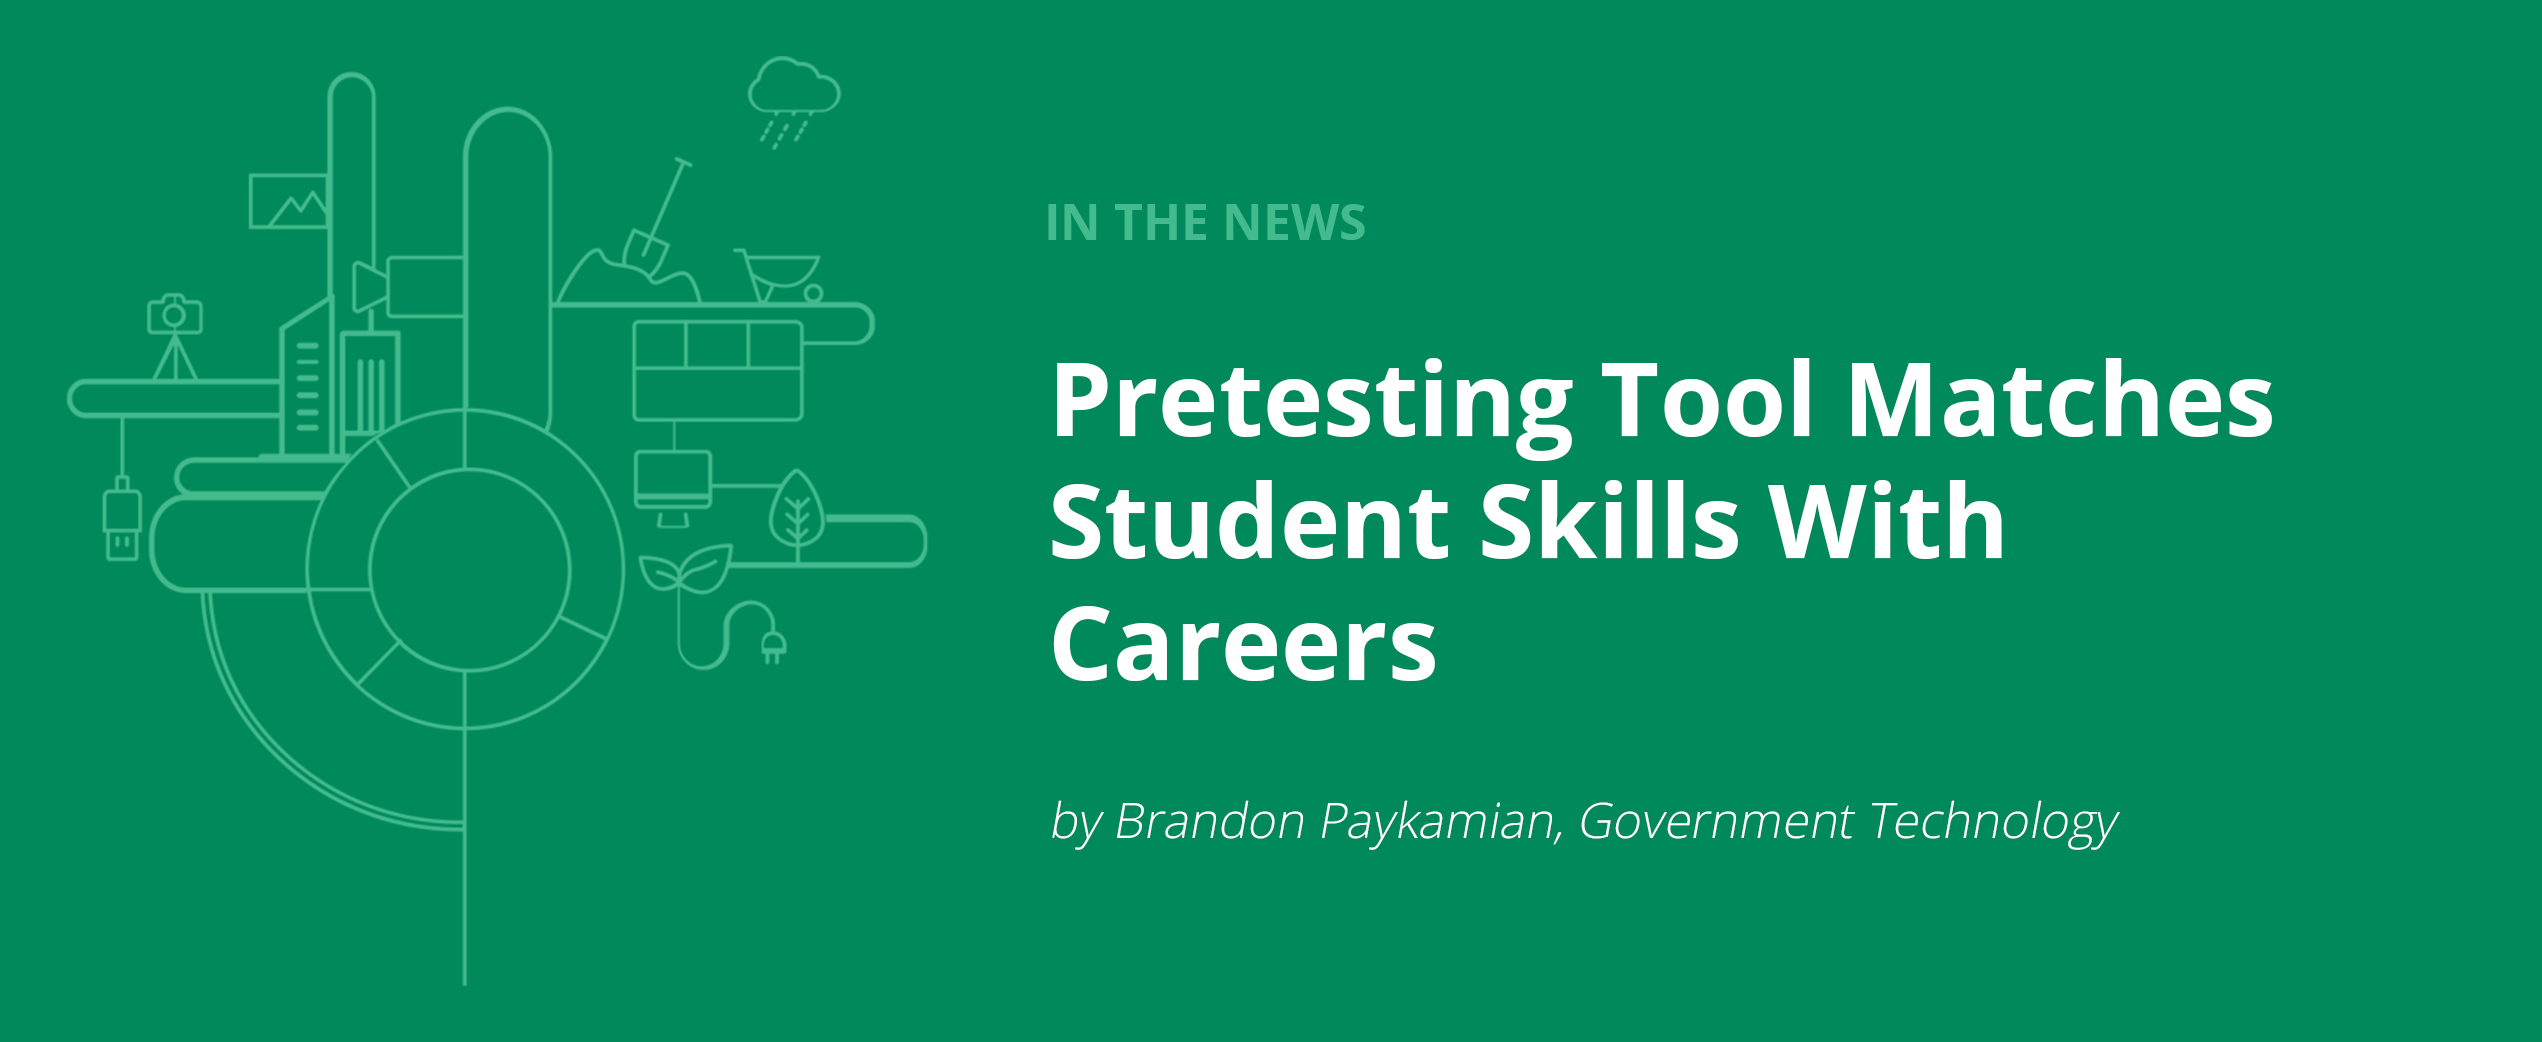 Pretesting Tool Matches Student Skills With Careers